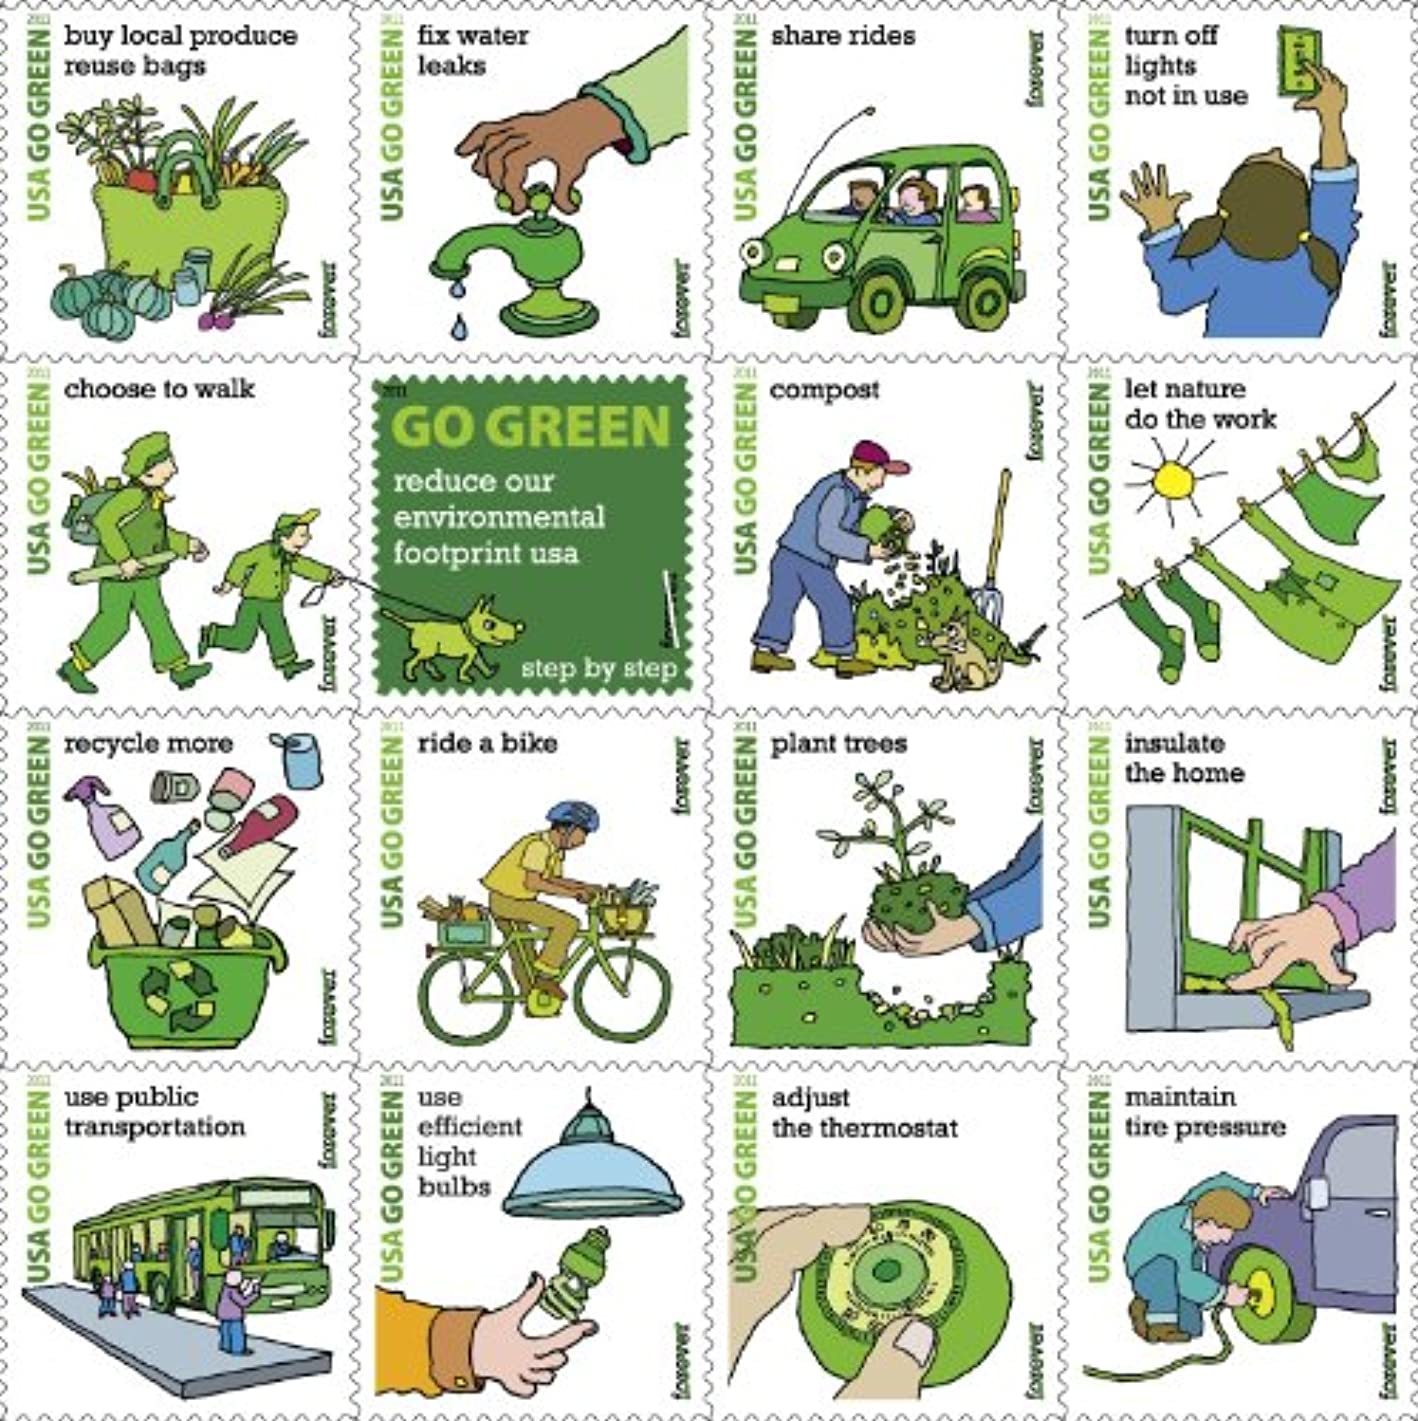 2011 Go Green Sheet of Sixteen Forever Stamps Scott 4524 By USPS